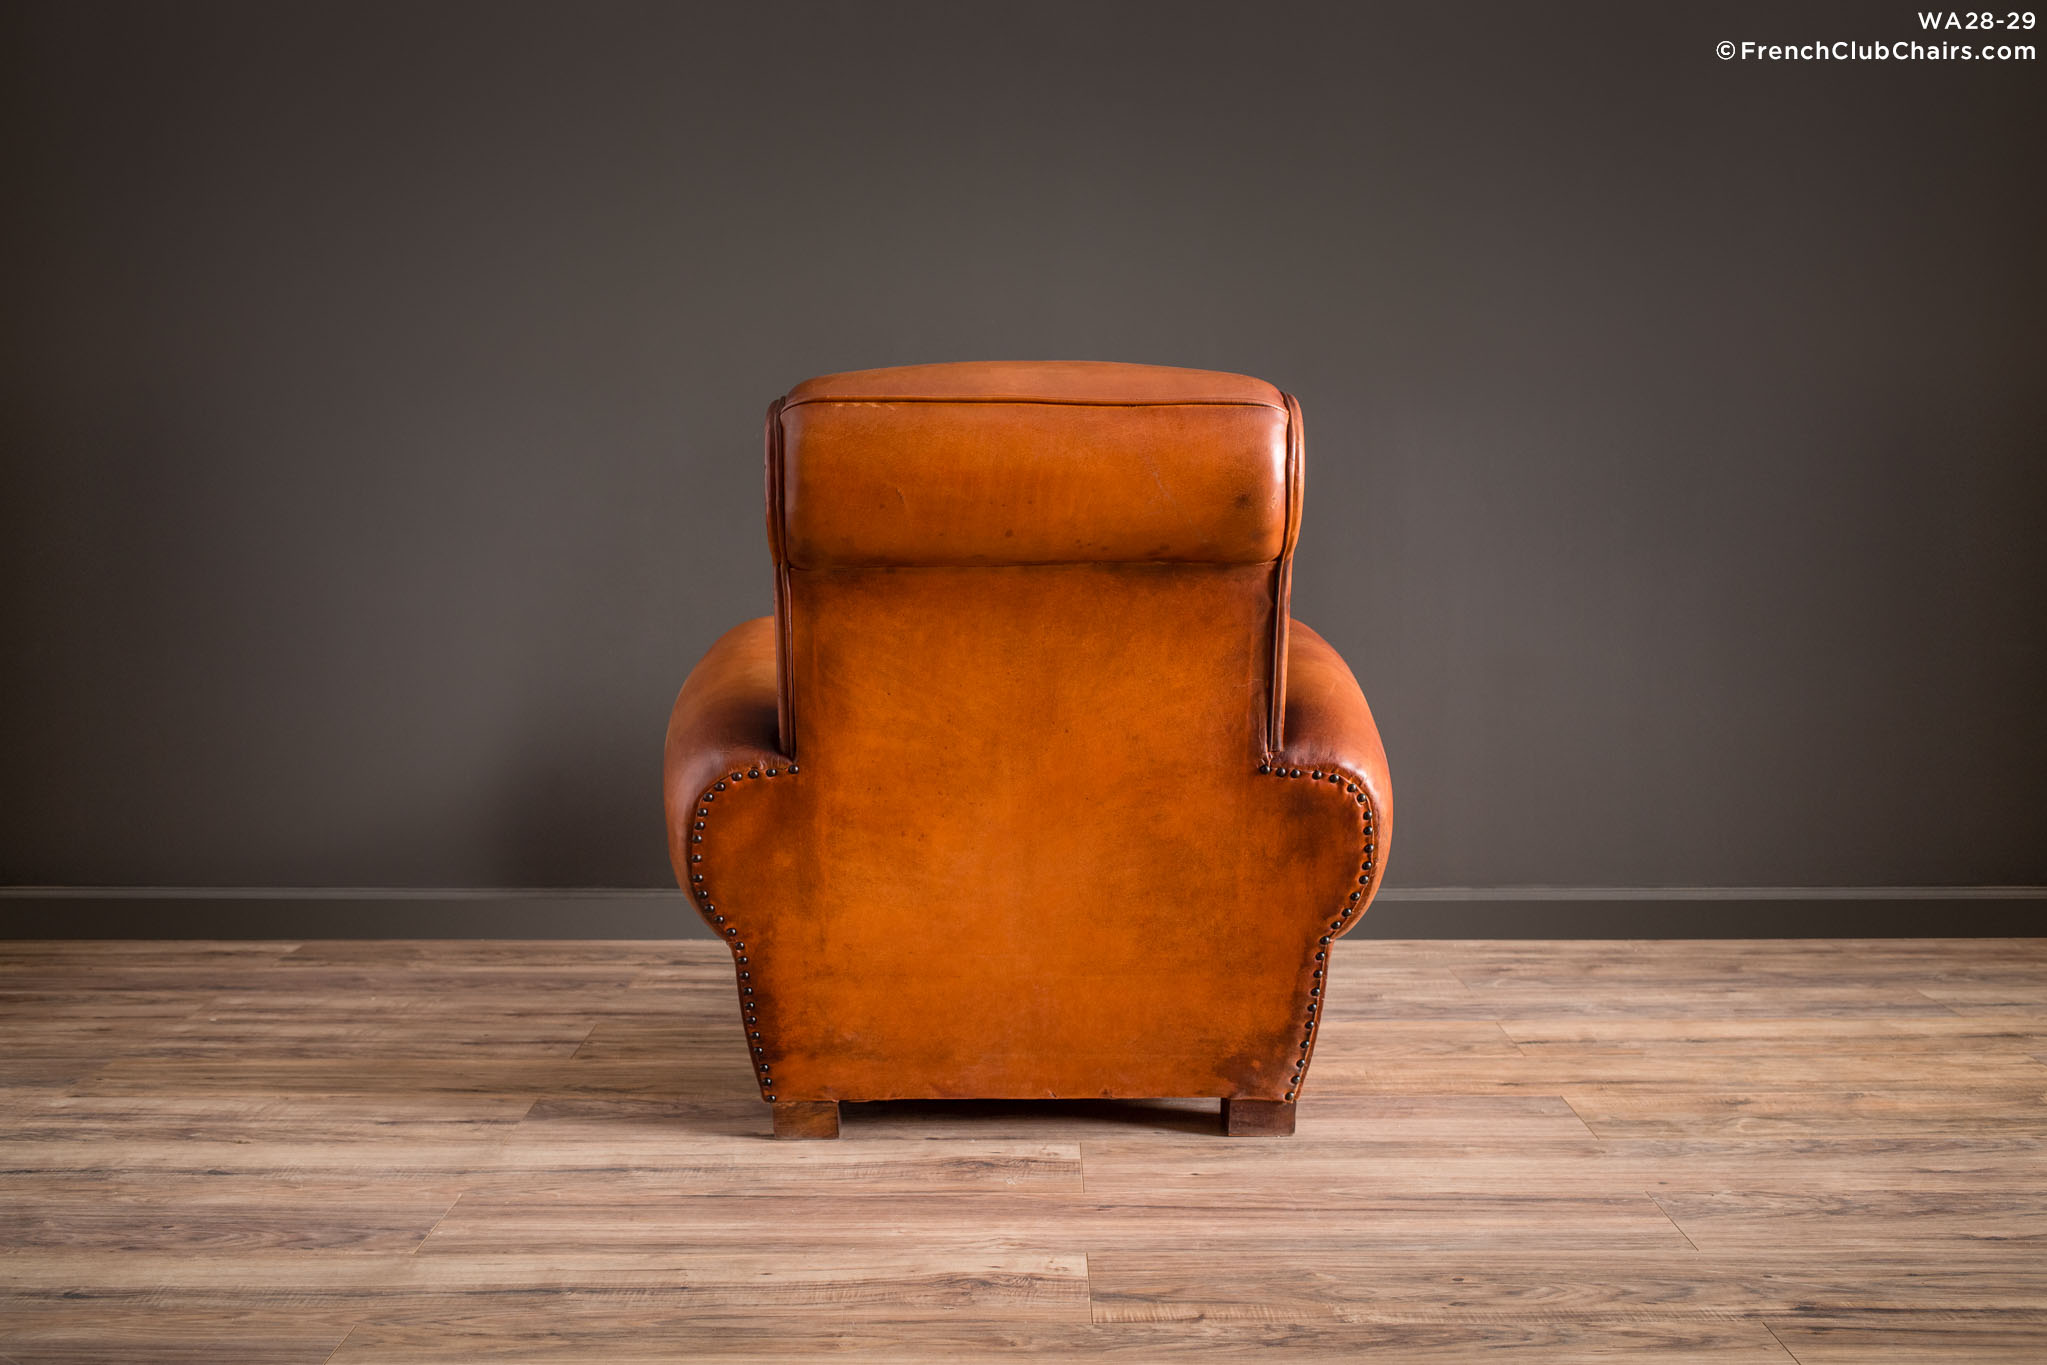 WA_28-29_Giant_Lille_Caramel_Rollback_Solo_R_2BK1-williams-antiks-leather-french-club-chair-wa_fcccom